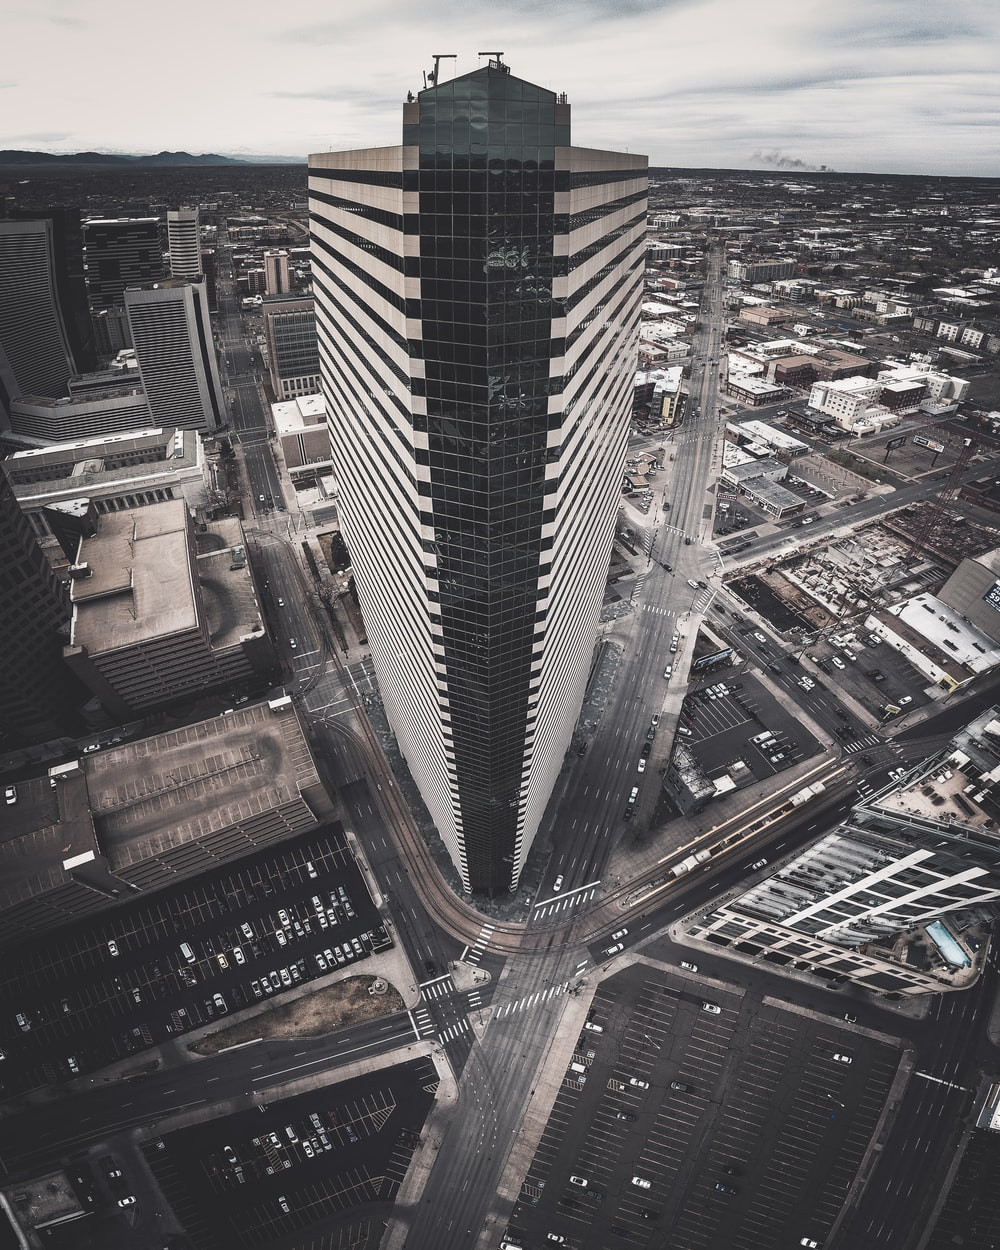 bird's-eye view photography of concrete high-rise building